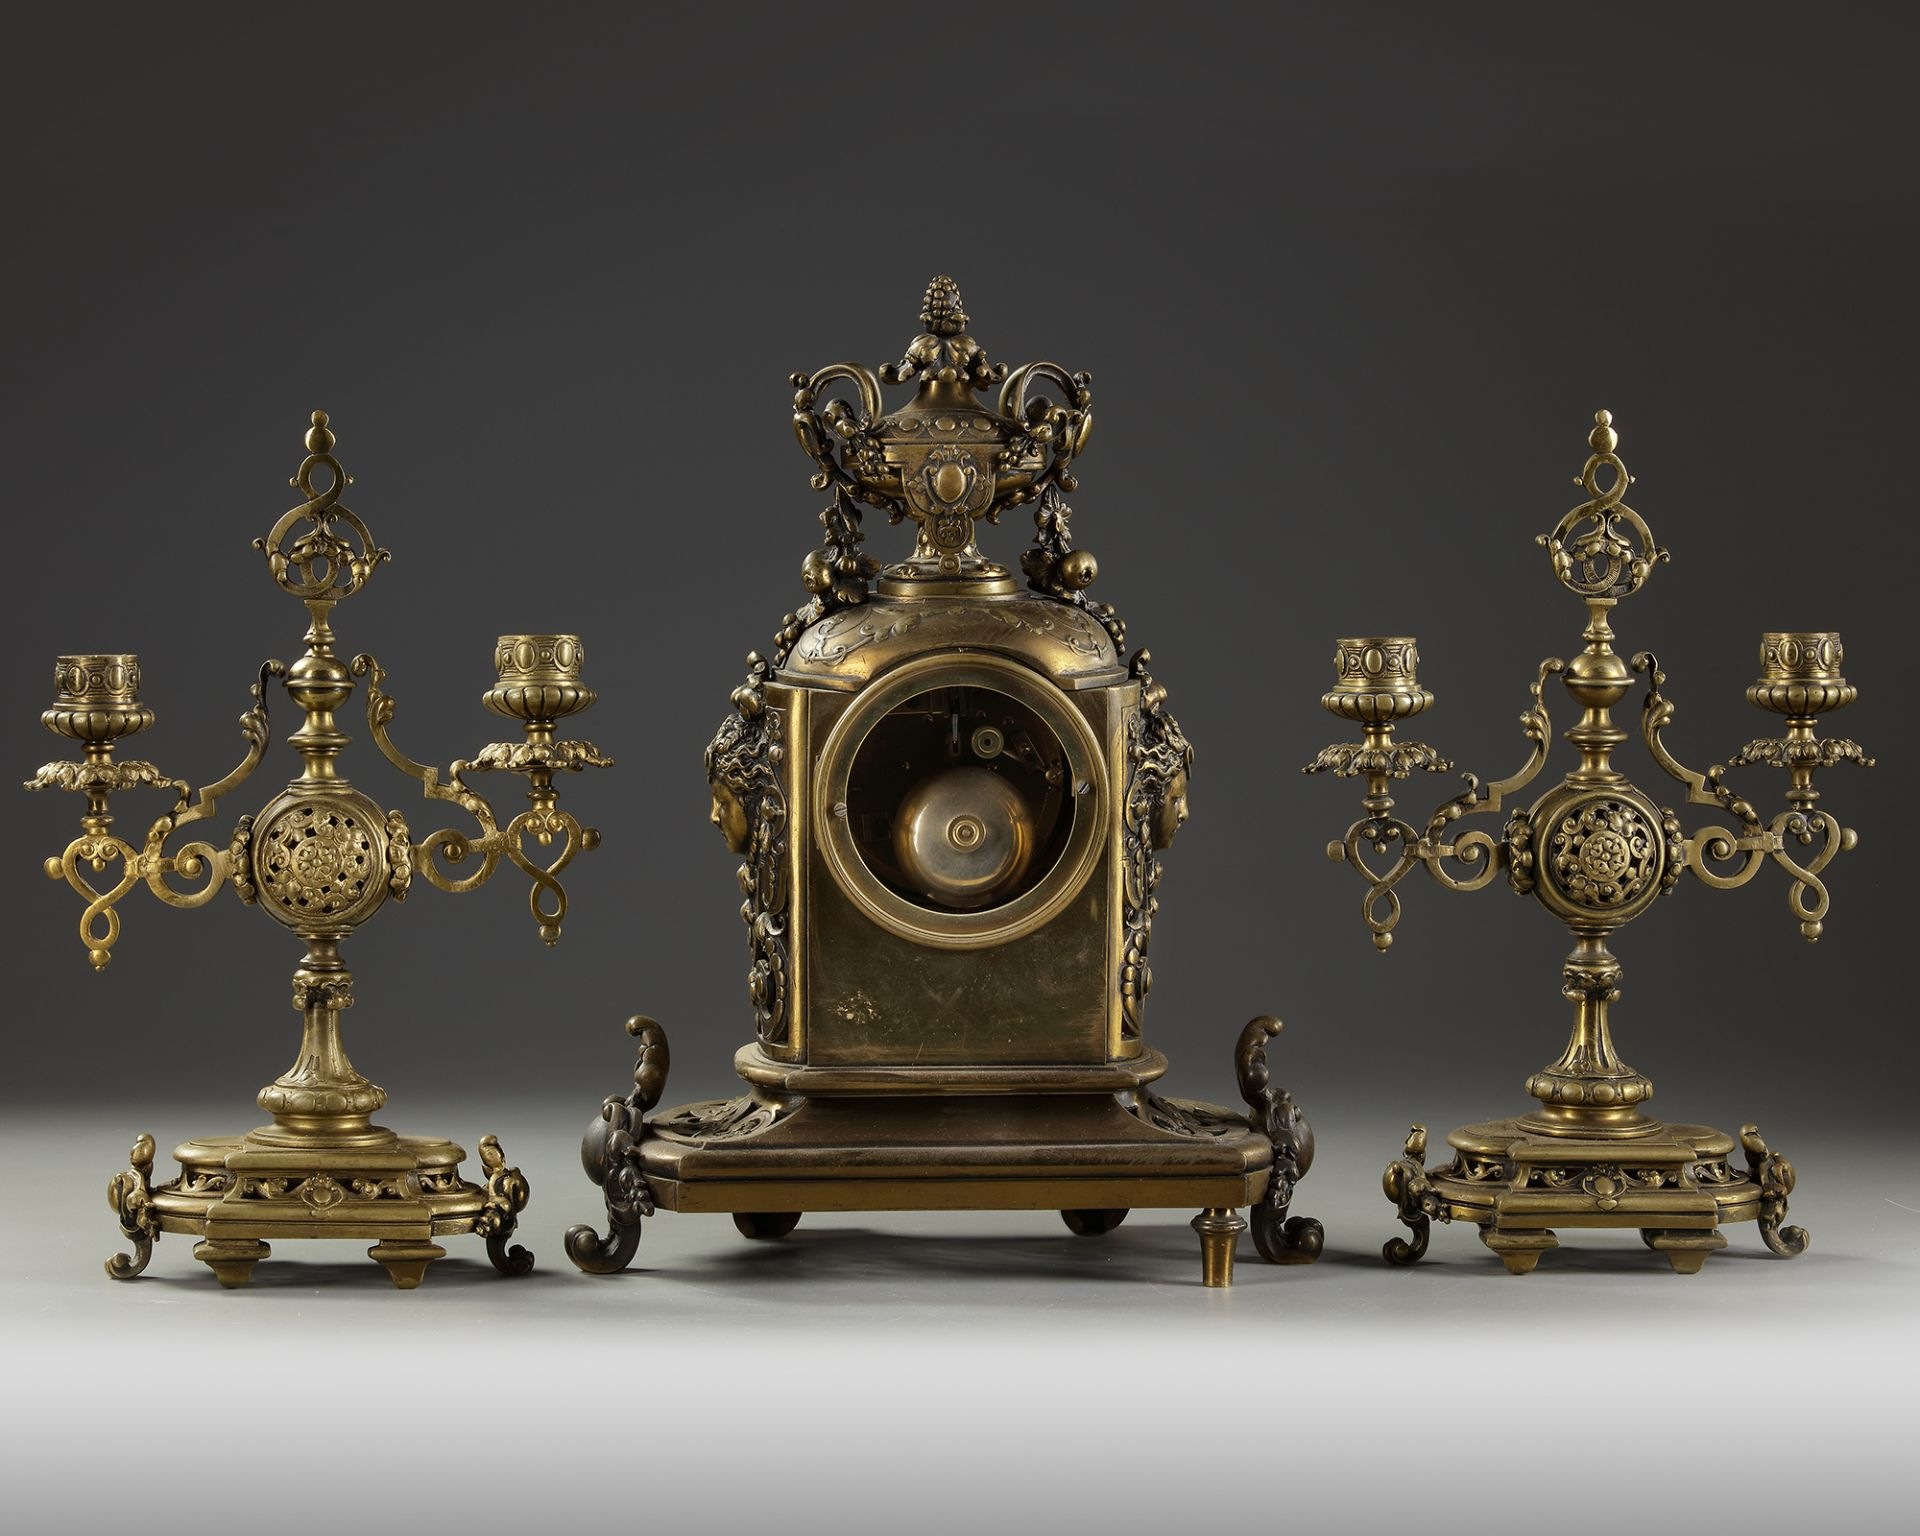 A NEO-RENAISSANCE STYLE BRONZE CLOCK AND CANDLELABRA SET, LATE 19TH CENTURY - Image 3 of 3